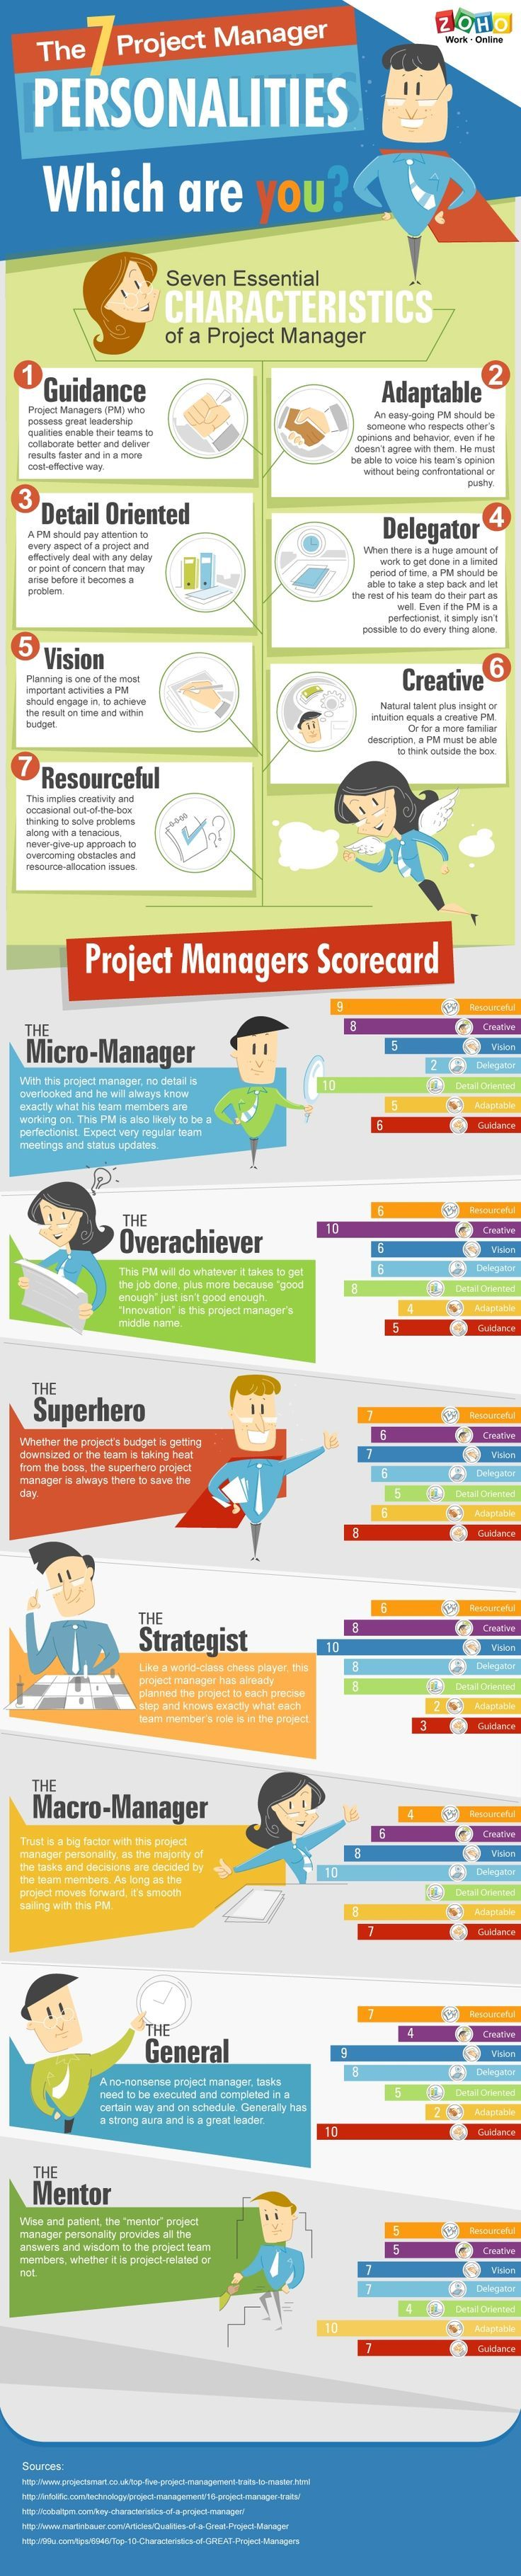 best images about project management personality the 7 project manager personalities which one are you whatever personality you ve got you can be the best project manager the aid of teamwork pm